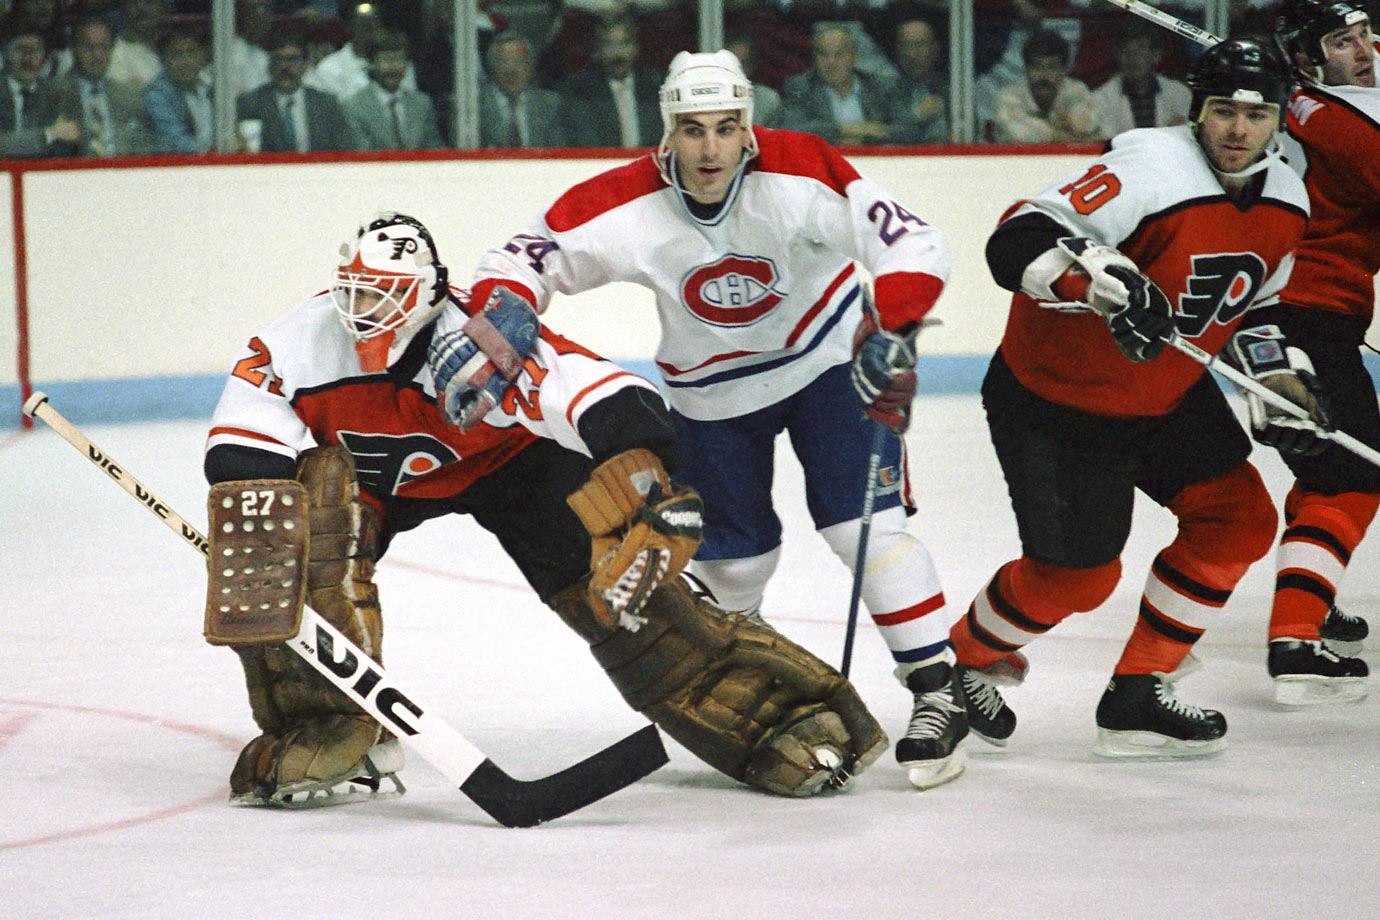 No one was more ill tempered or inspired more animosity in opponents. His 2,891 penalty minutes, second among NHL blueliners, were well earned. Flyers' goalie Ron Hextall once compromised his team's comeback in the closing minutes of a playoff game by chasing Chelios and pounding away. A three-time Norris Trophy winner, Cheli played to age 48 and his 1,651 games rank fifth all-time and first among defenseman.